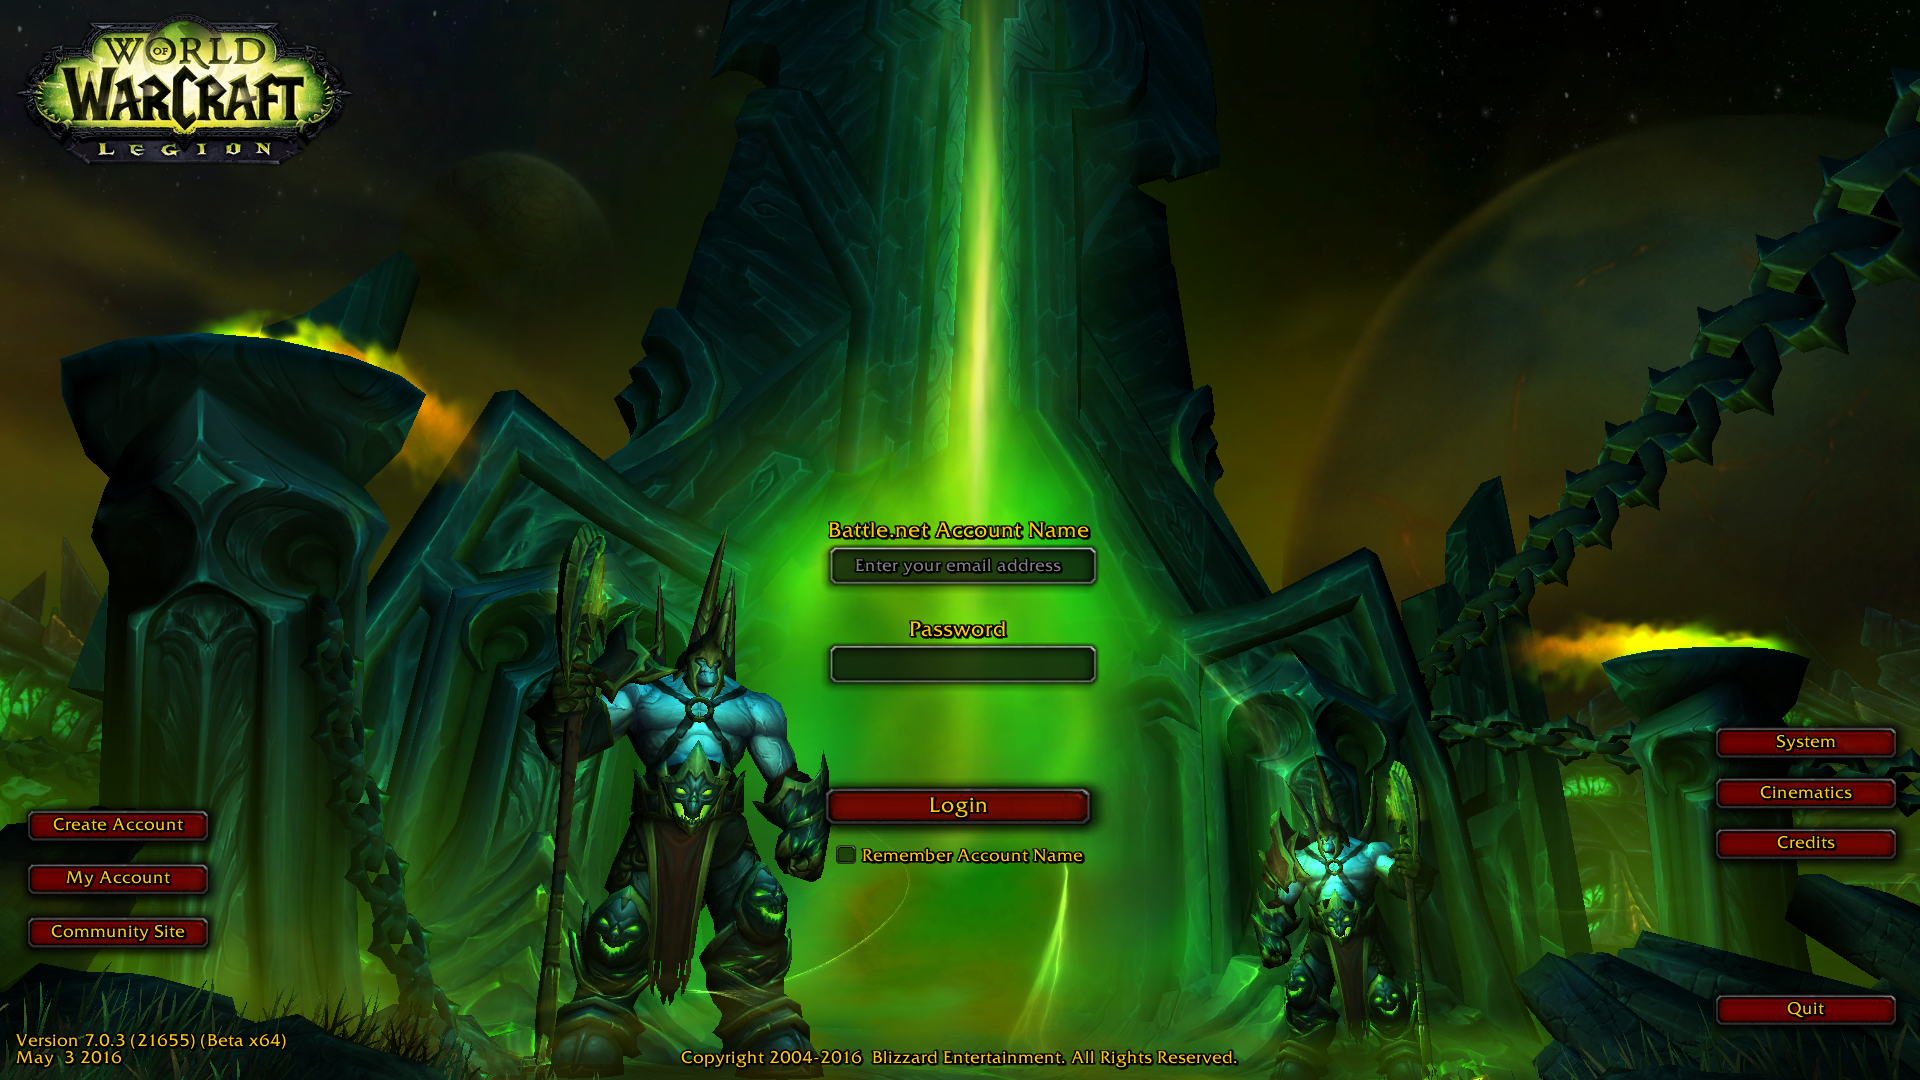 world-of-warcraft-legion-home-screen